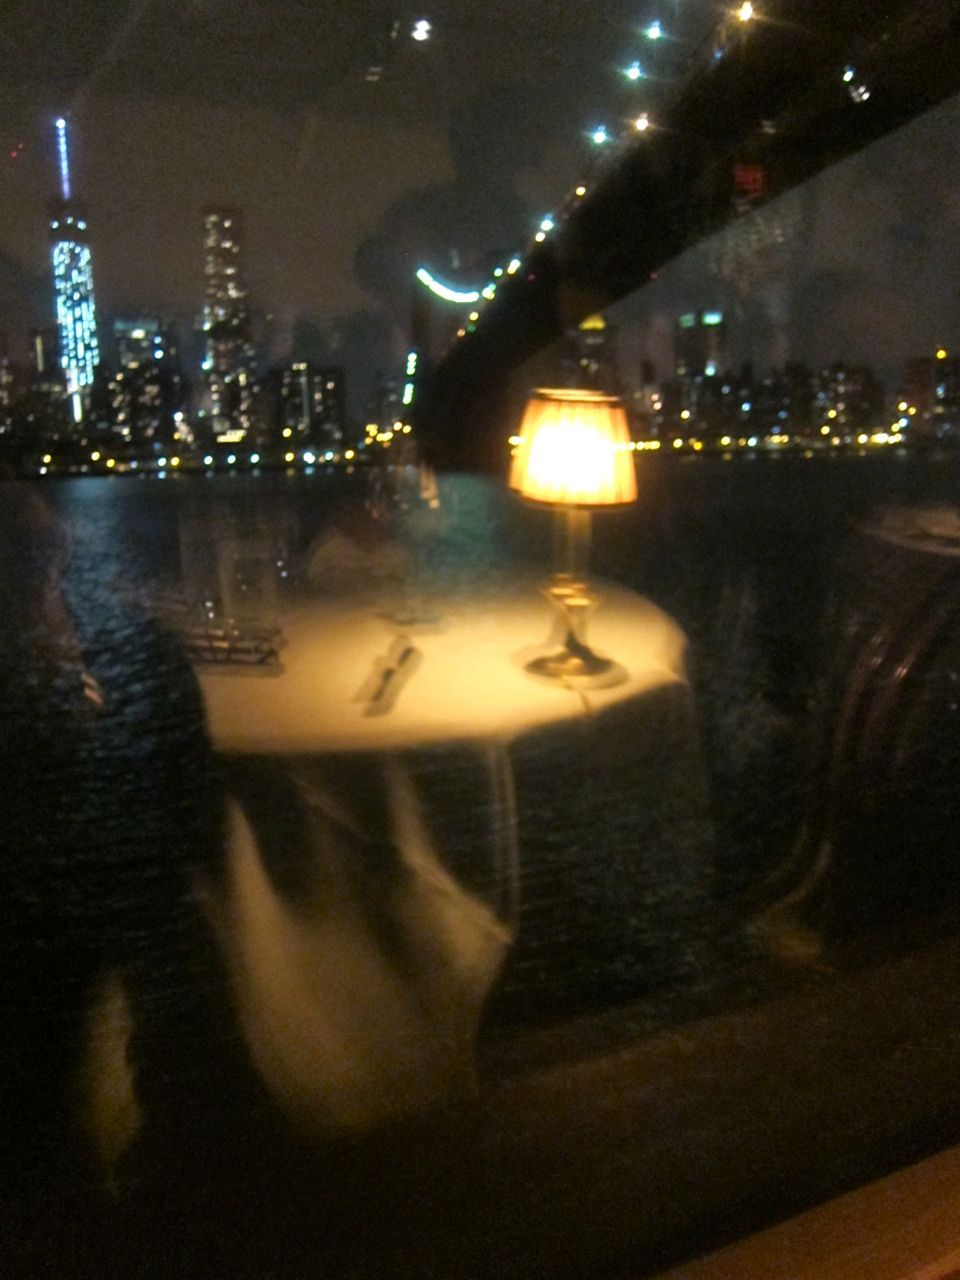 Our table reflected in The River Café window looking out at the jeweled towers.